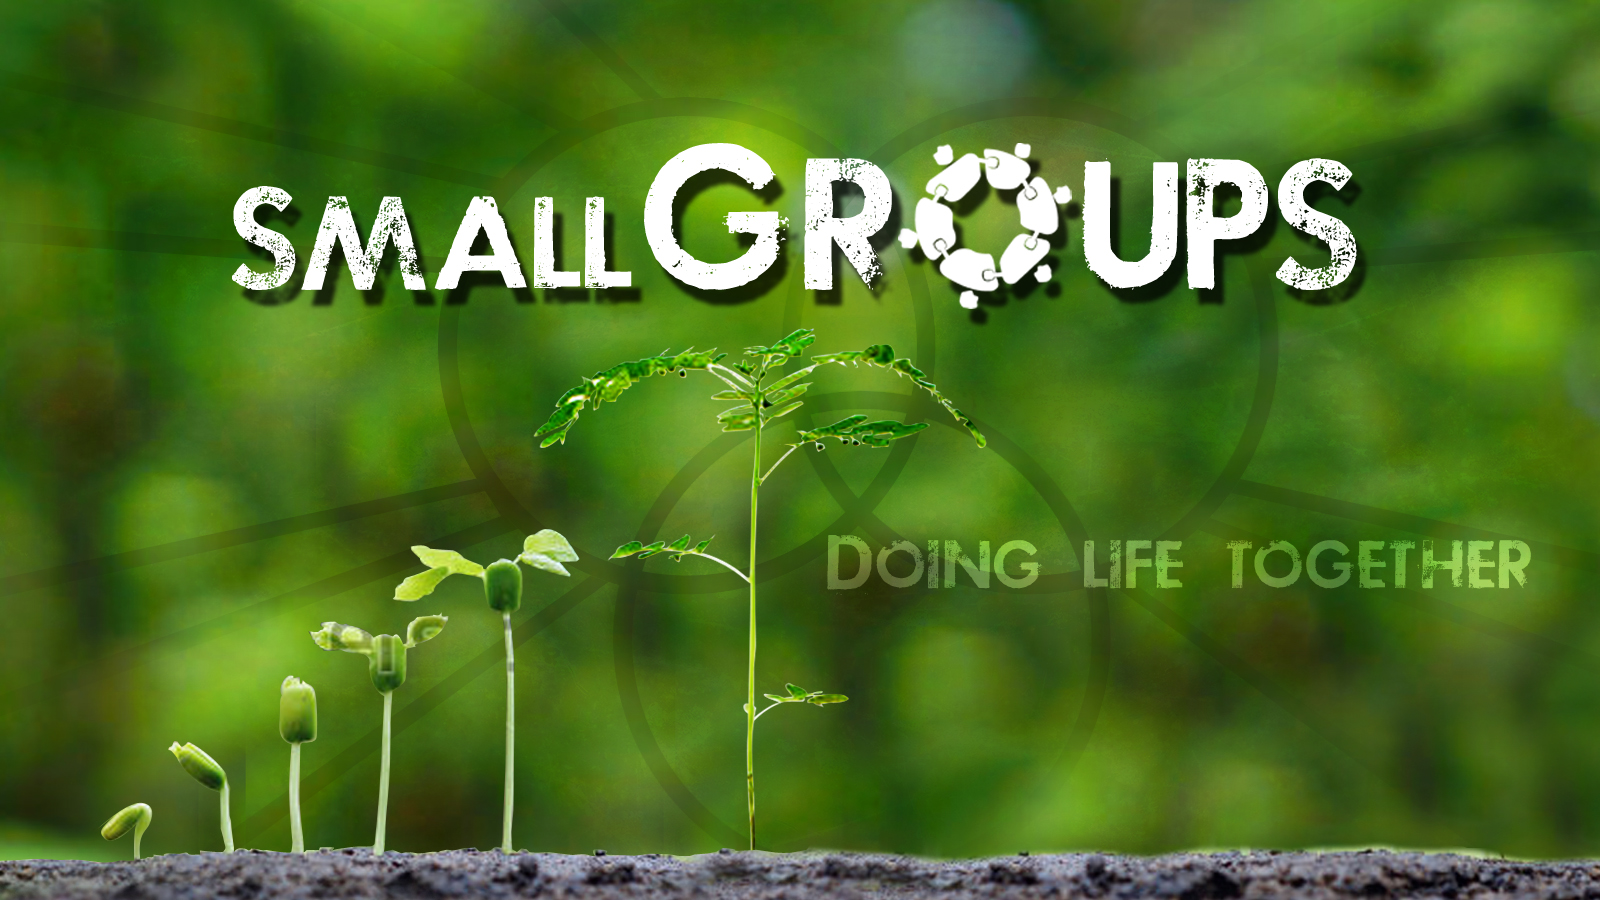 Small groups 2017 hd16